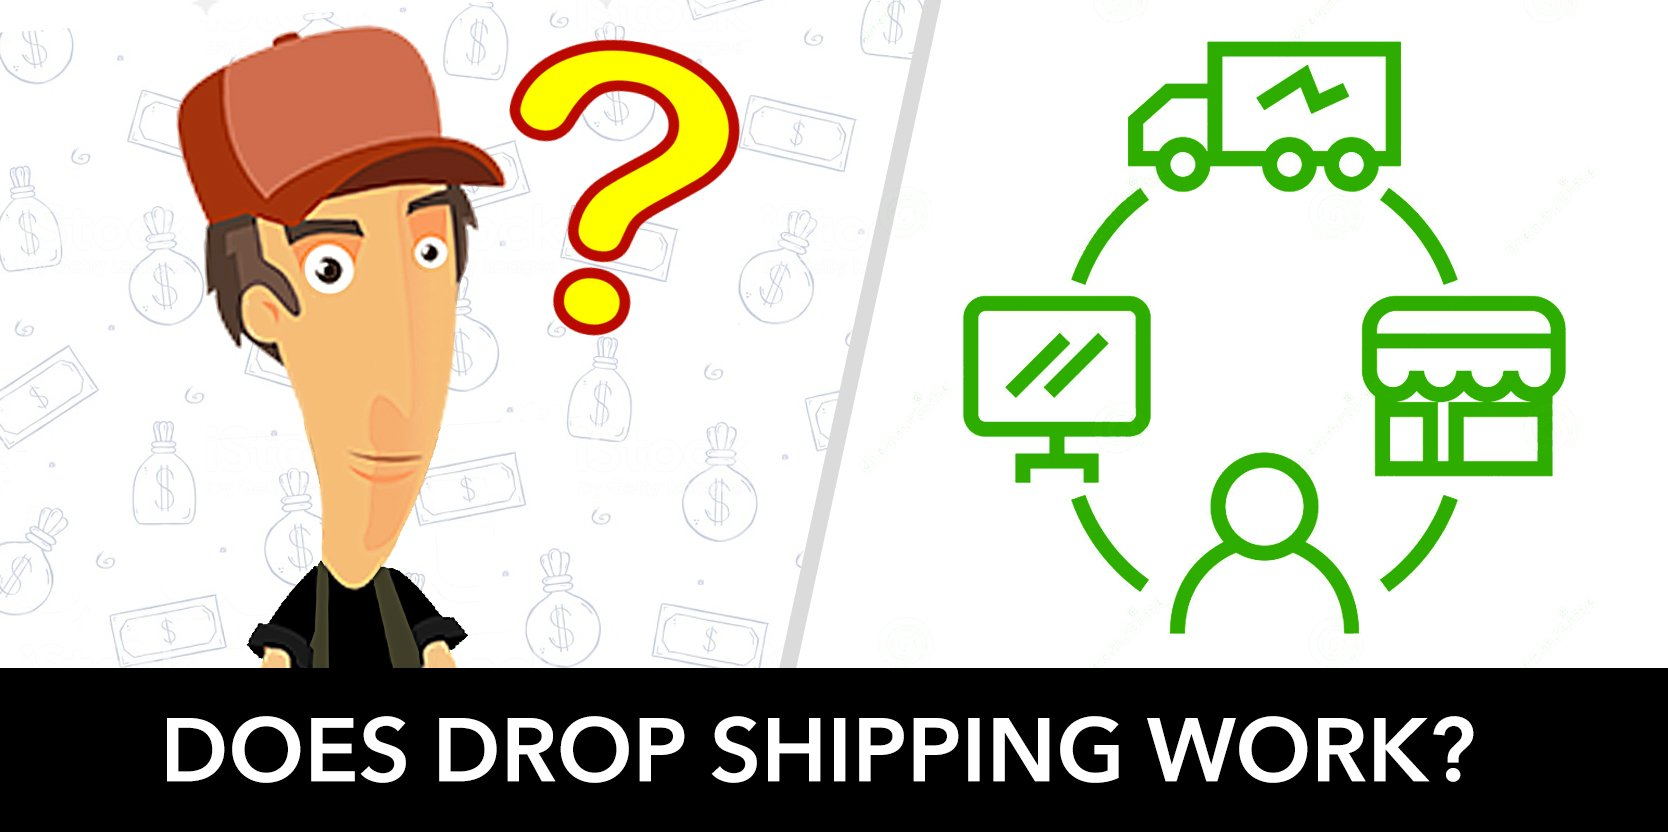 Does Drop Shipping Work?